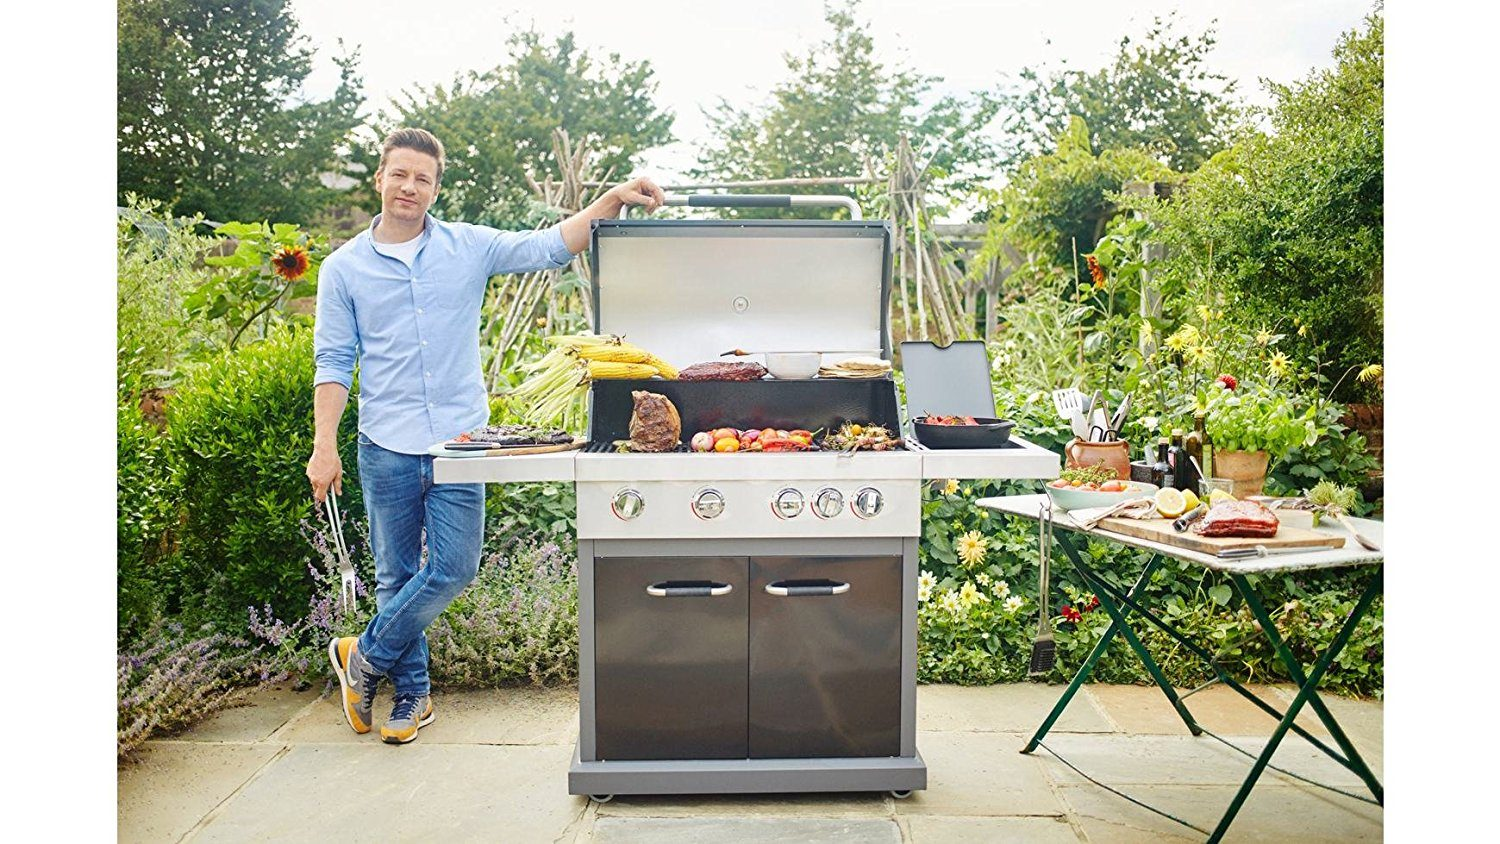 Tepro Gasgrill Vancouver Test : Jamie oliver gasgrill expertentesten